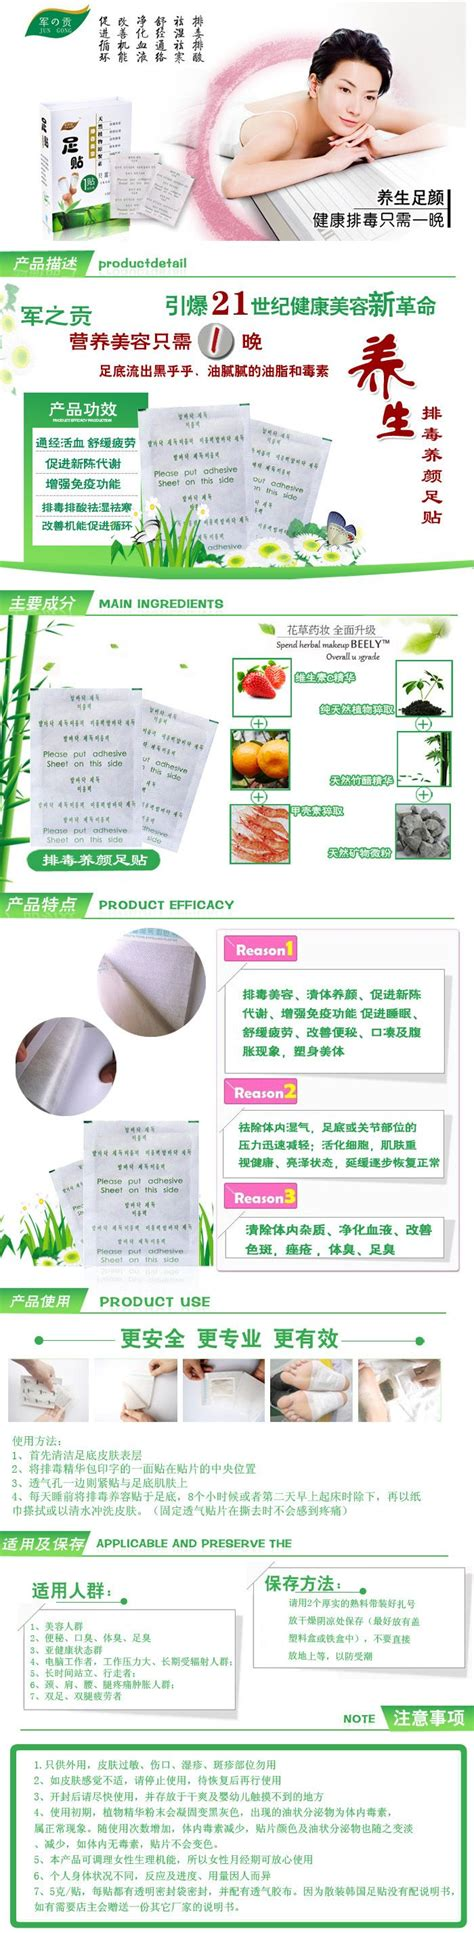 What Pulls Out Lead For Detox by Buy Foot Detox Patches Detox Foot Pads Yadi Foot Detox